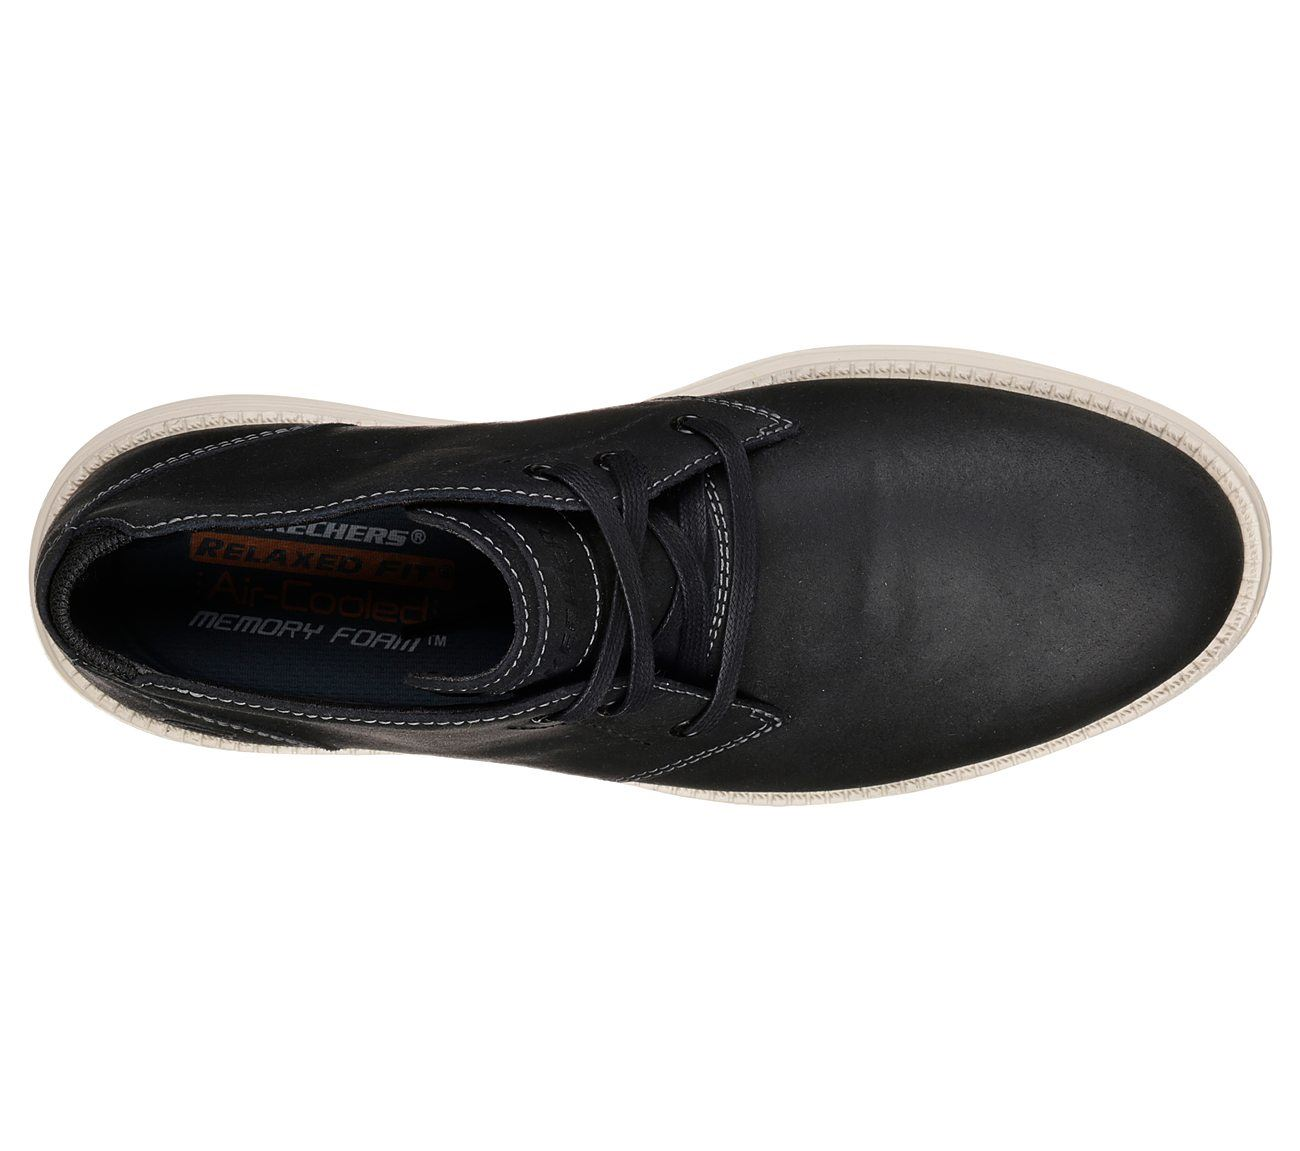 Details about Skechers Mens Relaxed Fit status rolano Oxford Black Shoes show original title